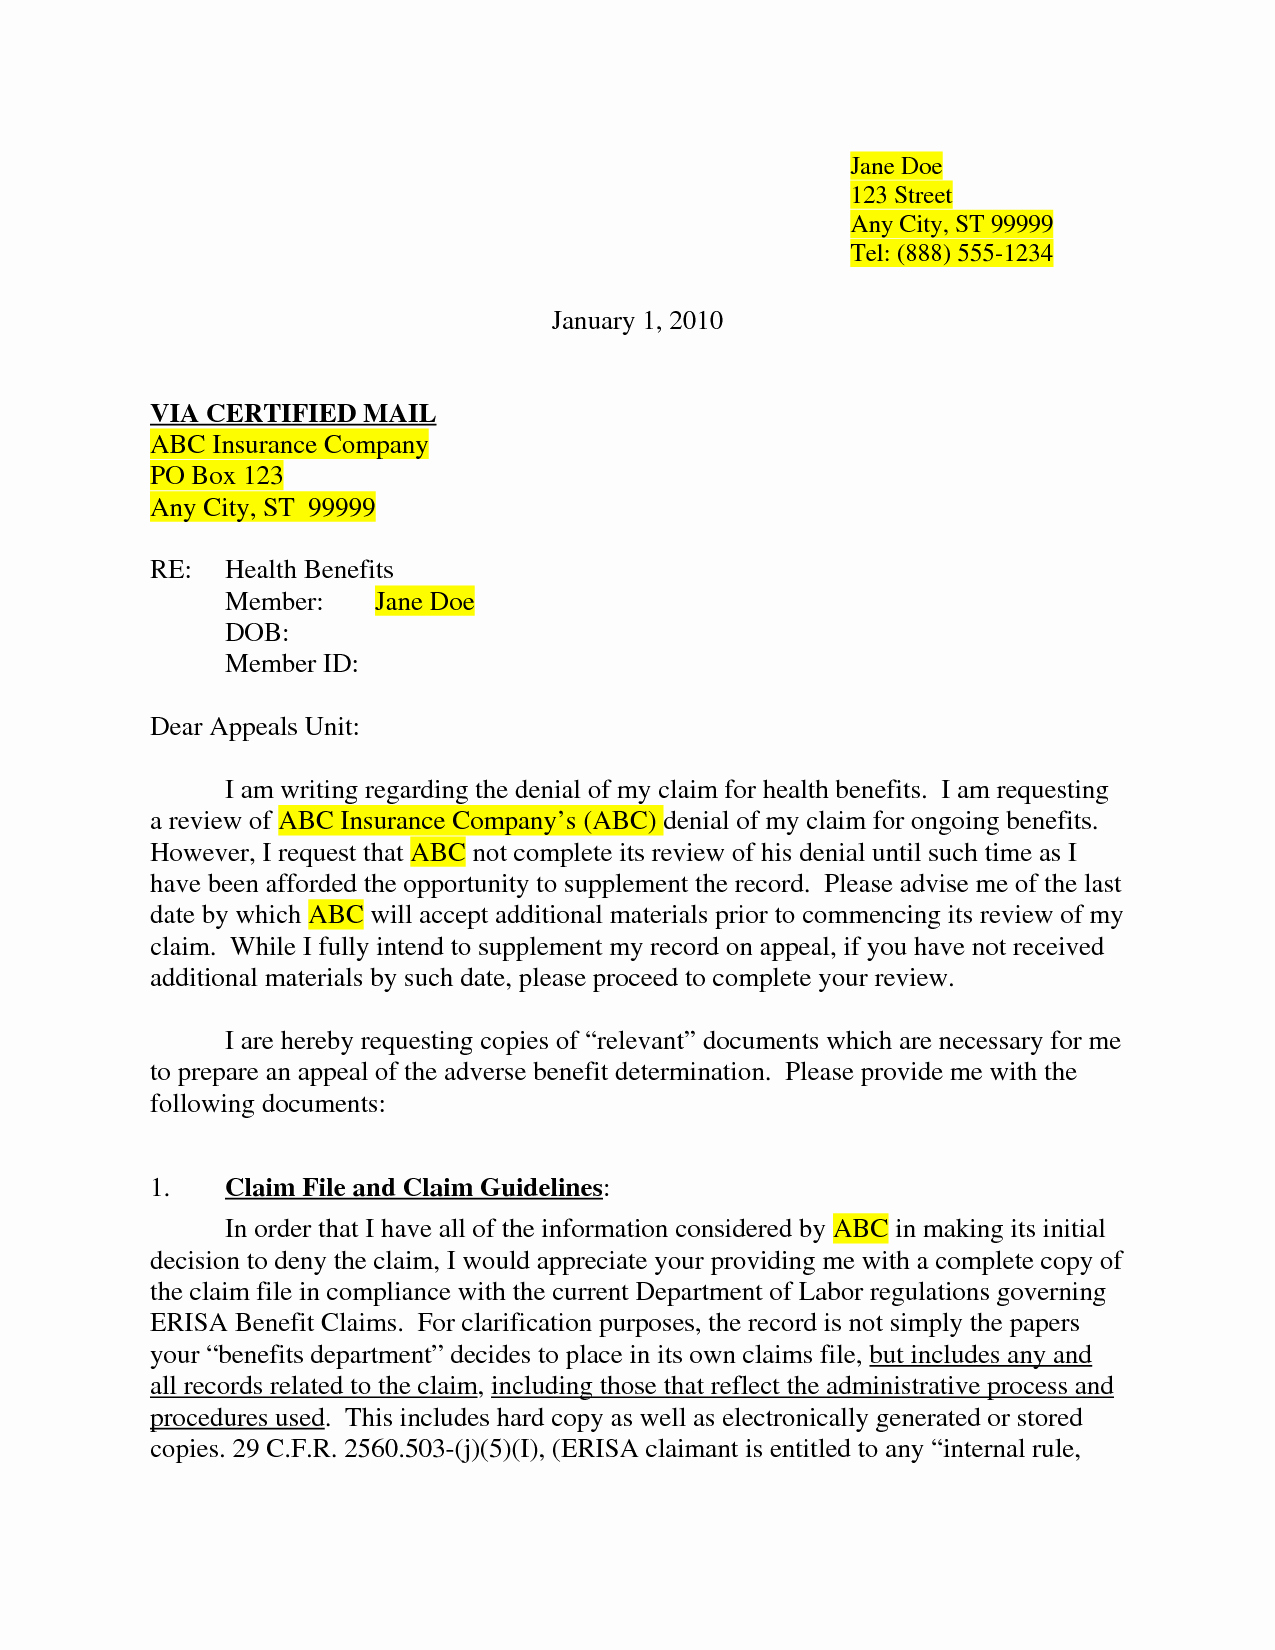 Insurance Appeal Letter Samples New Best S Of Medical Claim Appeal Letter Sample